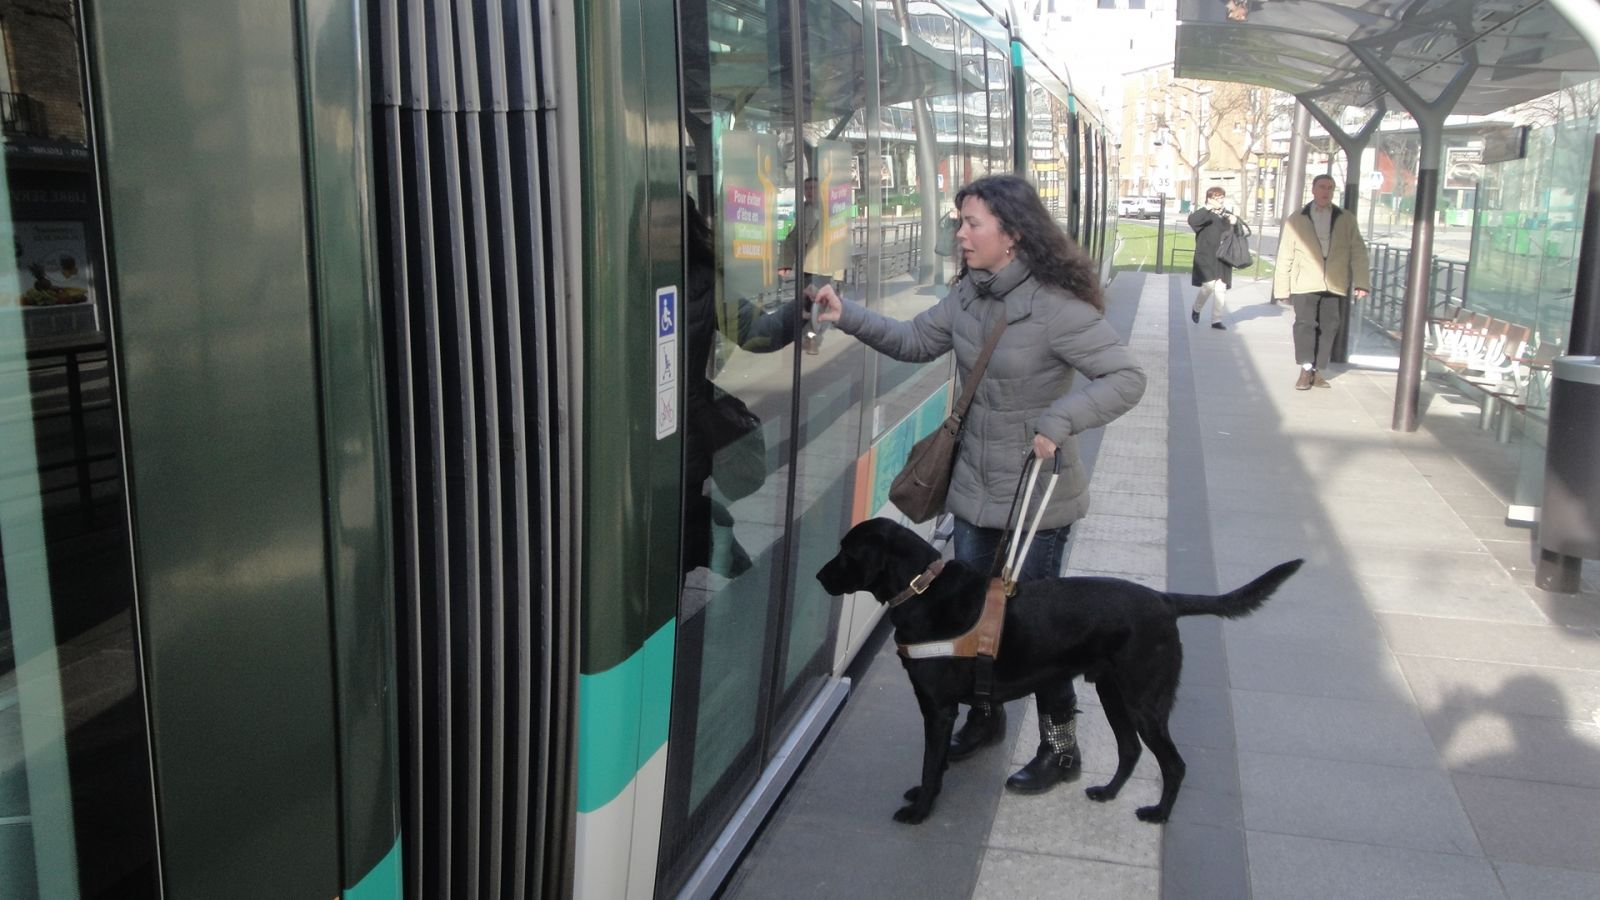 chien-guide-paris-journee-perfectionnement-tramway-02.jpg